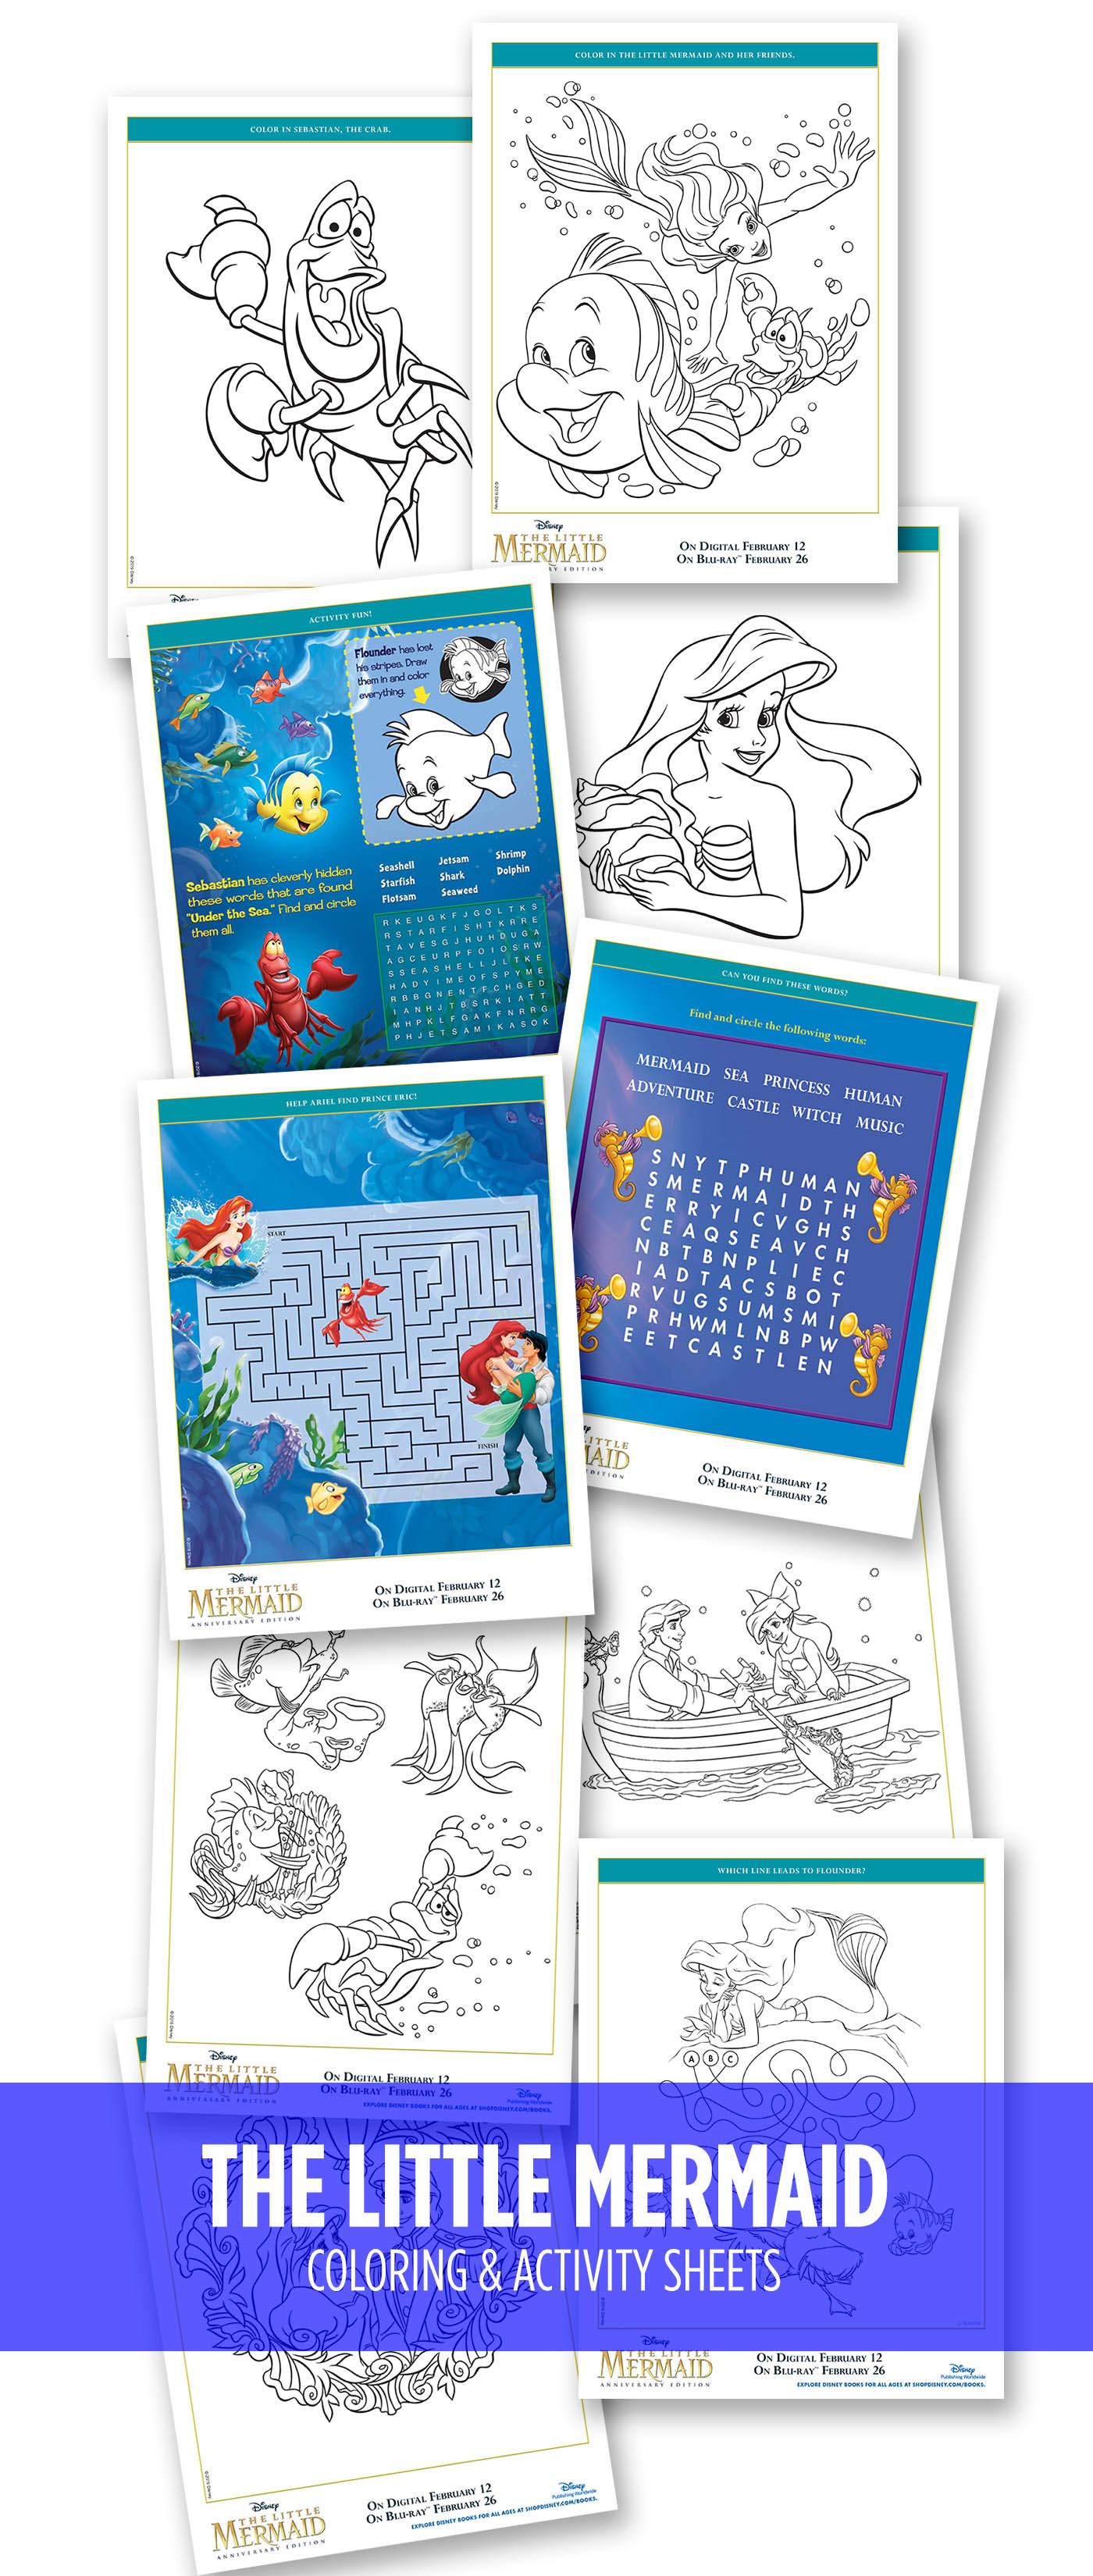 The Little Mermaid coloring and activity pages